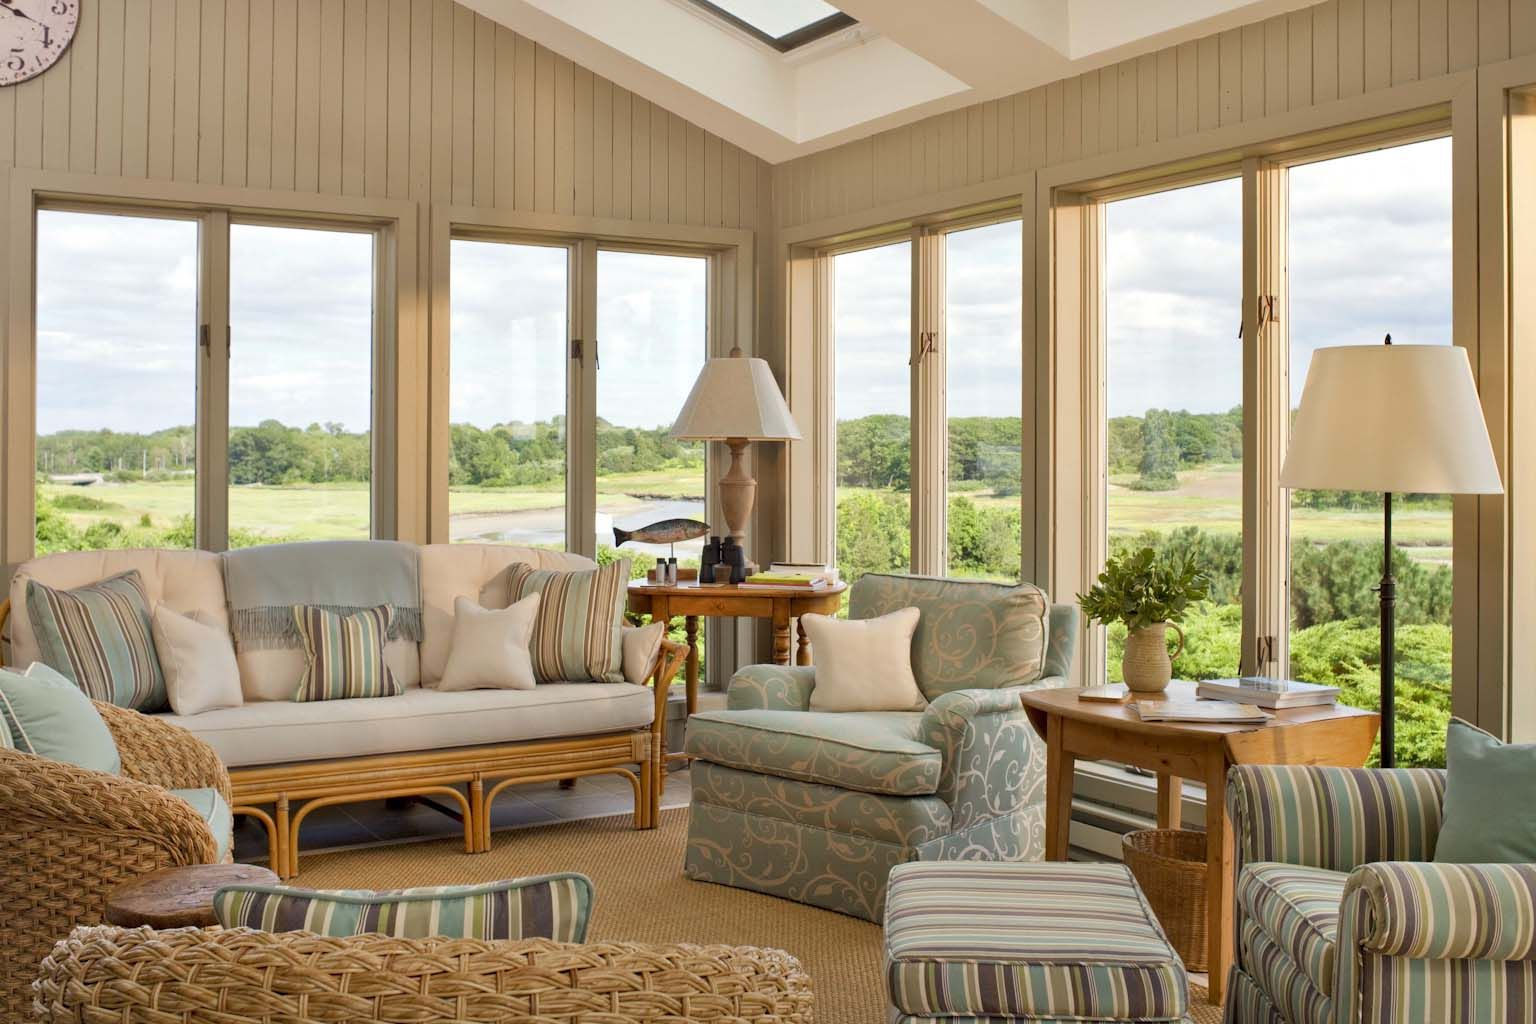 Furniture ideas for sunrooms to inspire you on how to